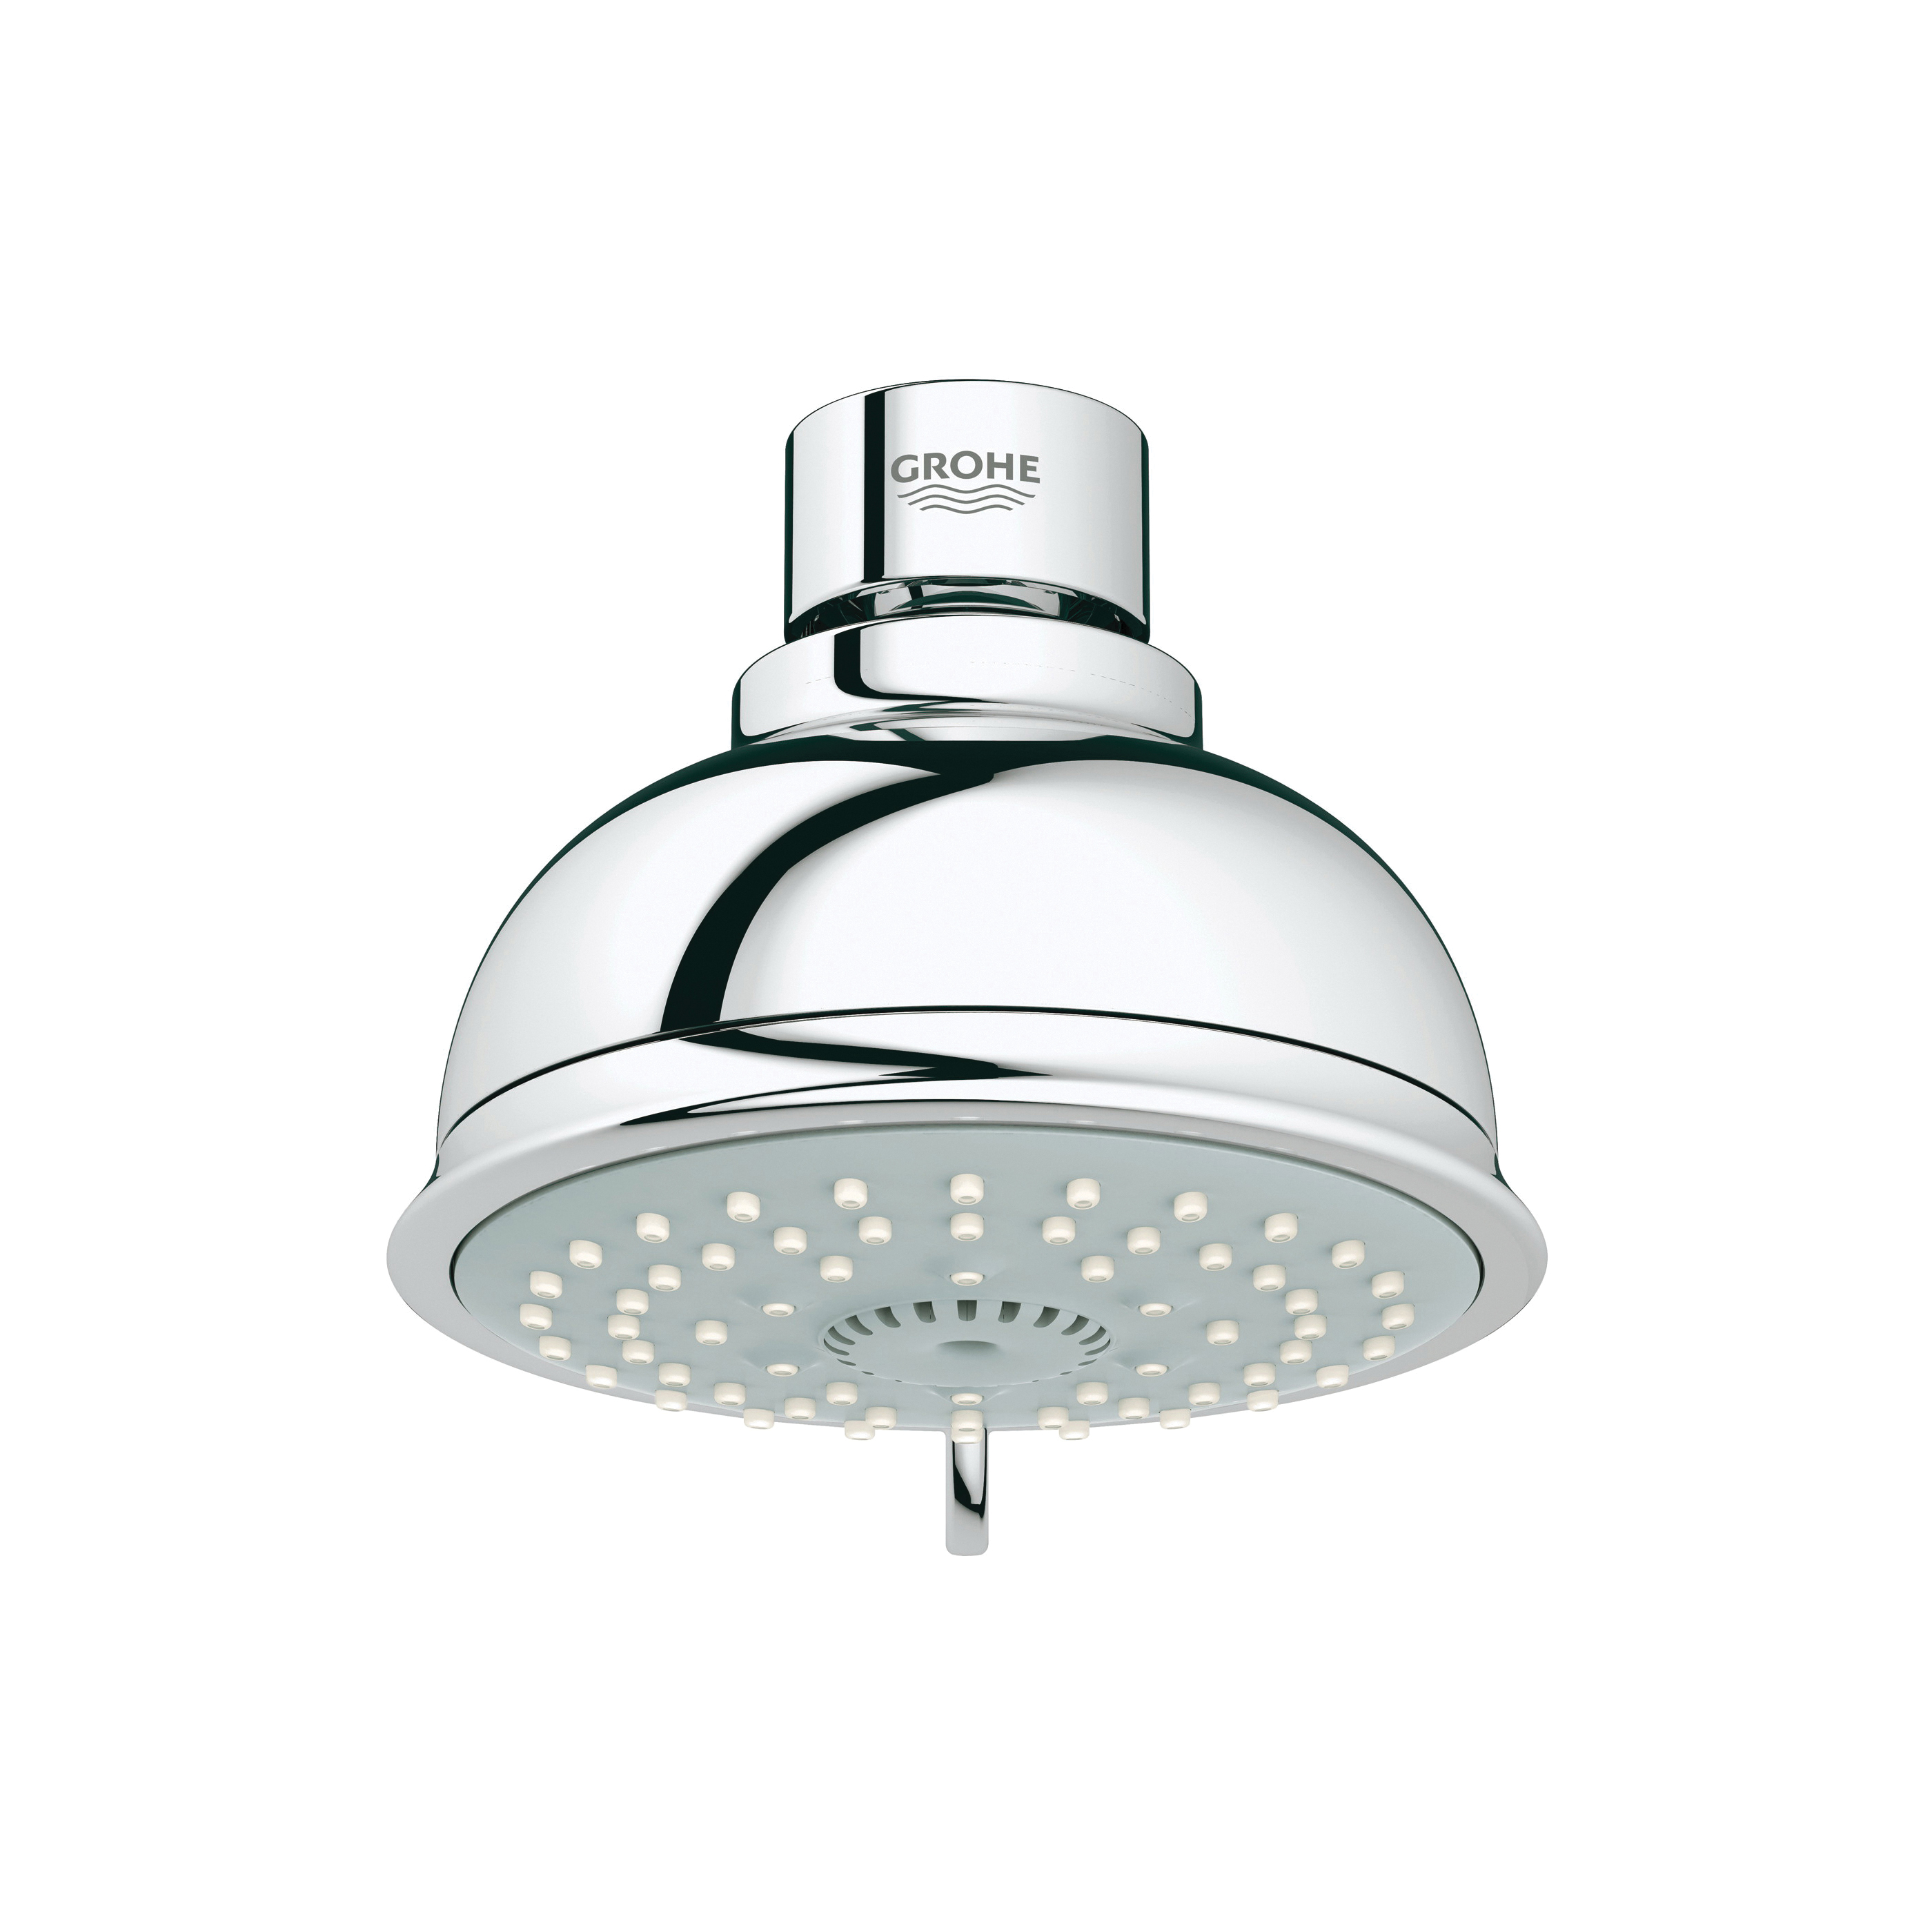 GROHE 26045000 New Tempesta® Rustic 100 Shower Head, 2 gpm, 4 Sprays, Wall Mount, 3.93 in Head, Import